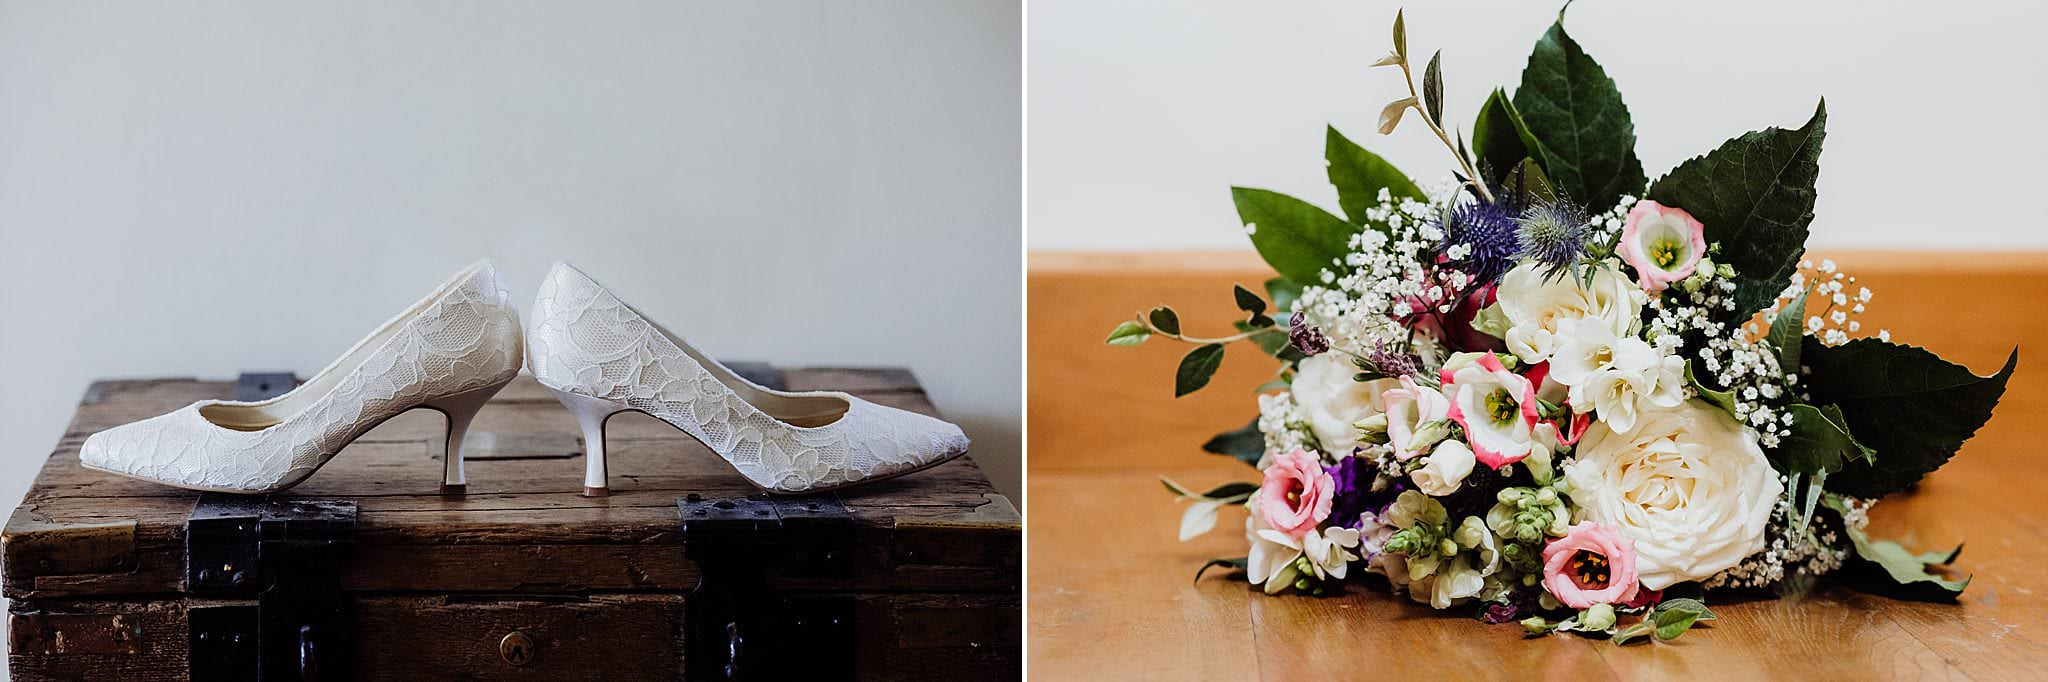 White bridal high heels shoes with wedding bouquet